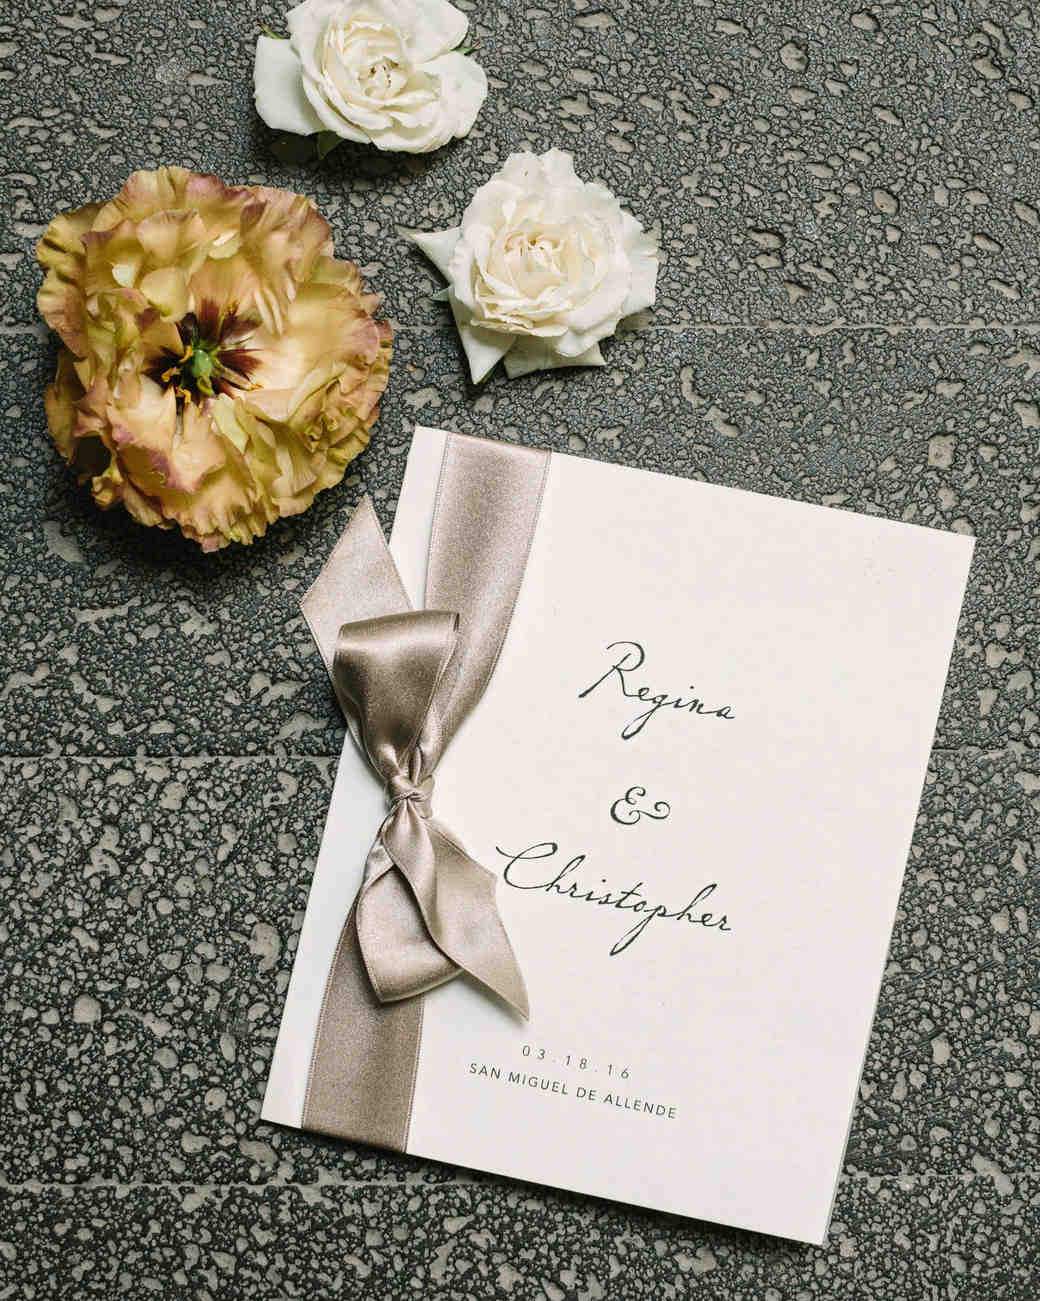 regina chris wedding program